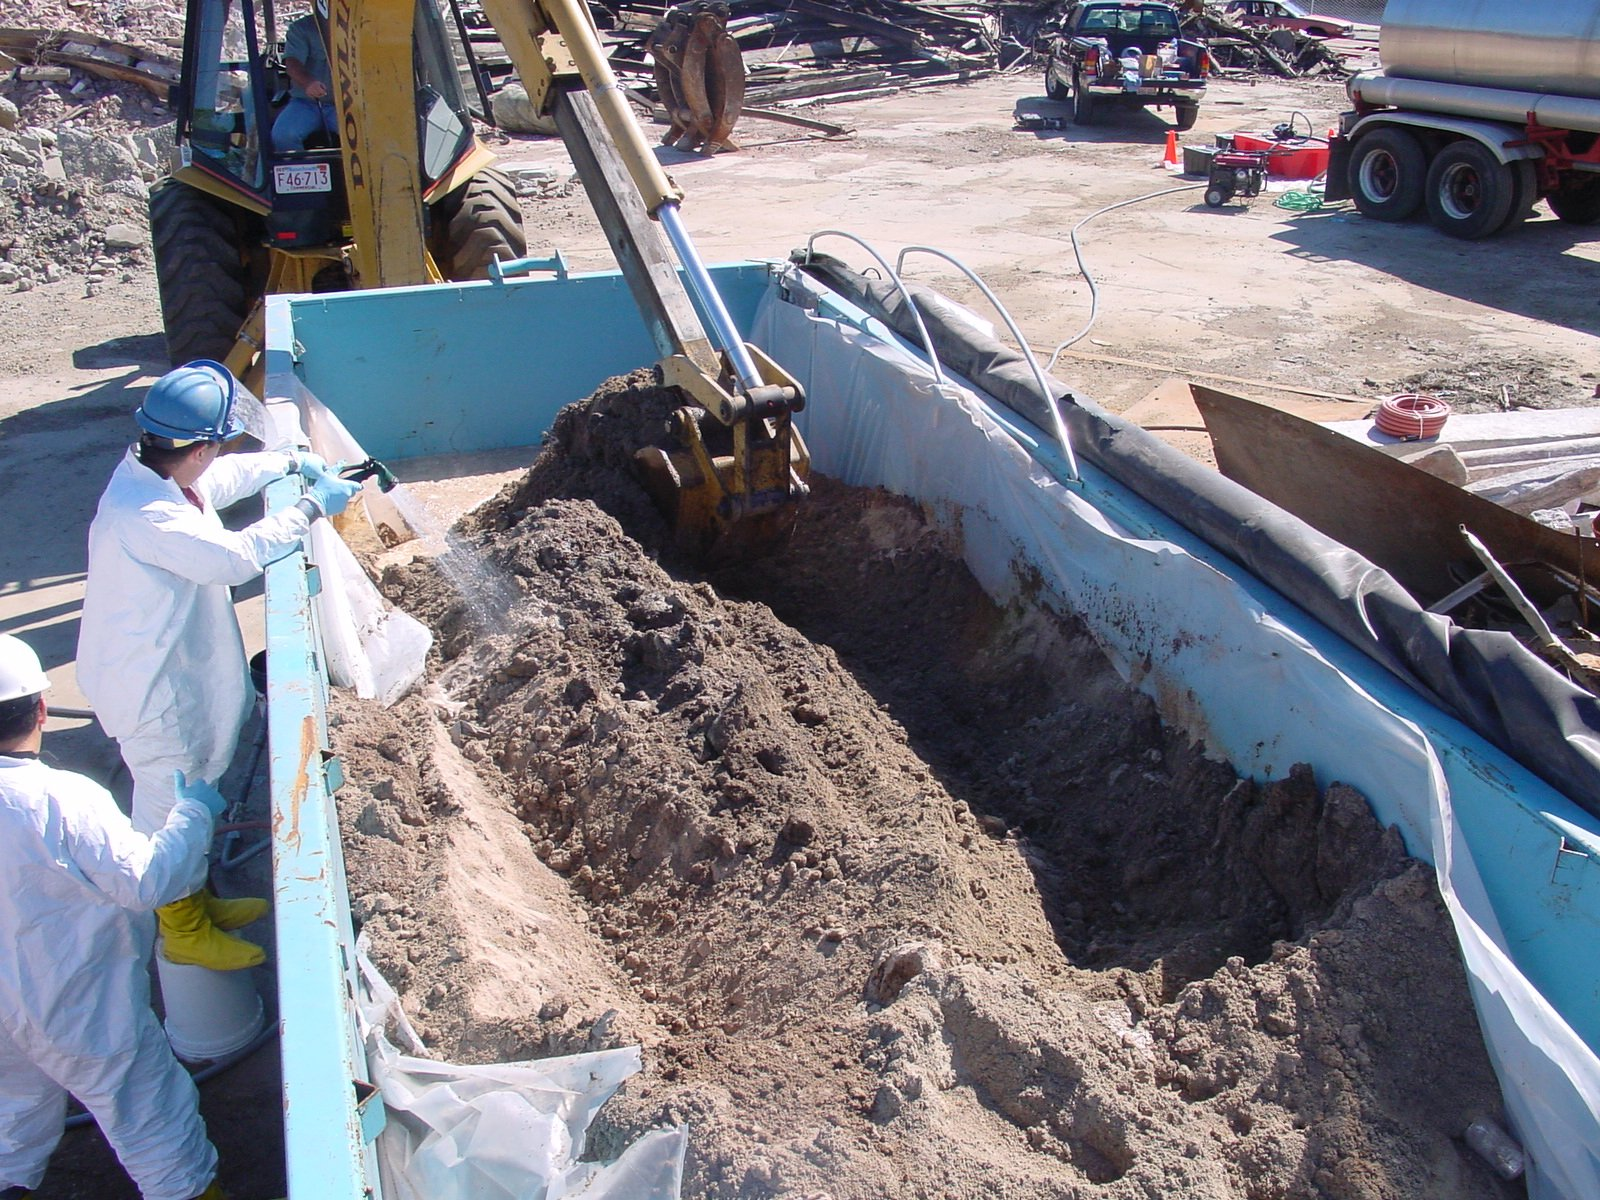 Chemical fixation for contaminated soils